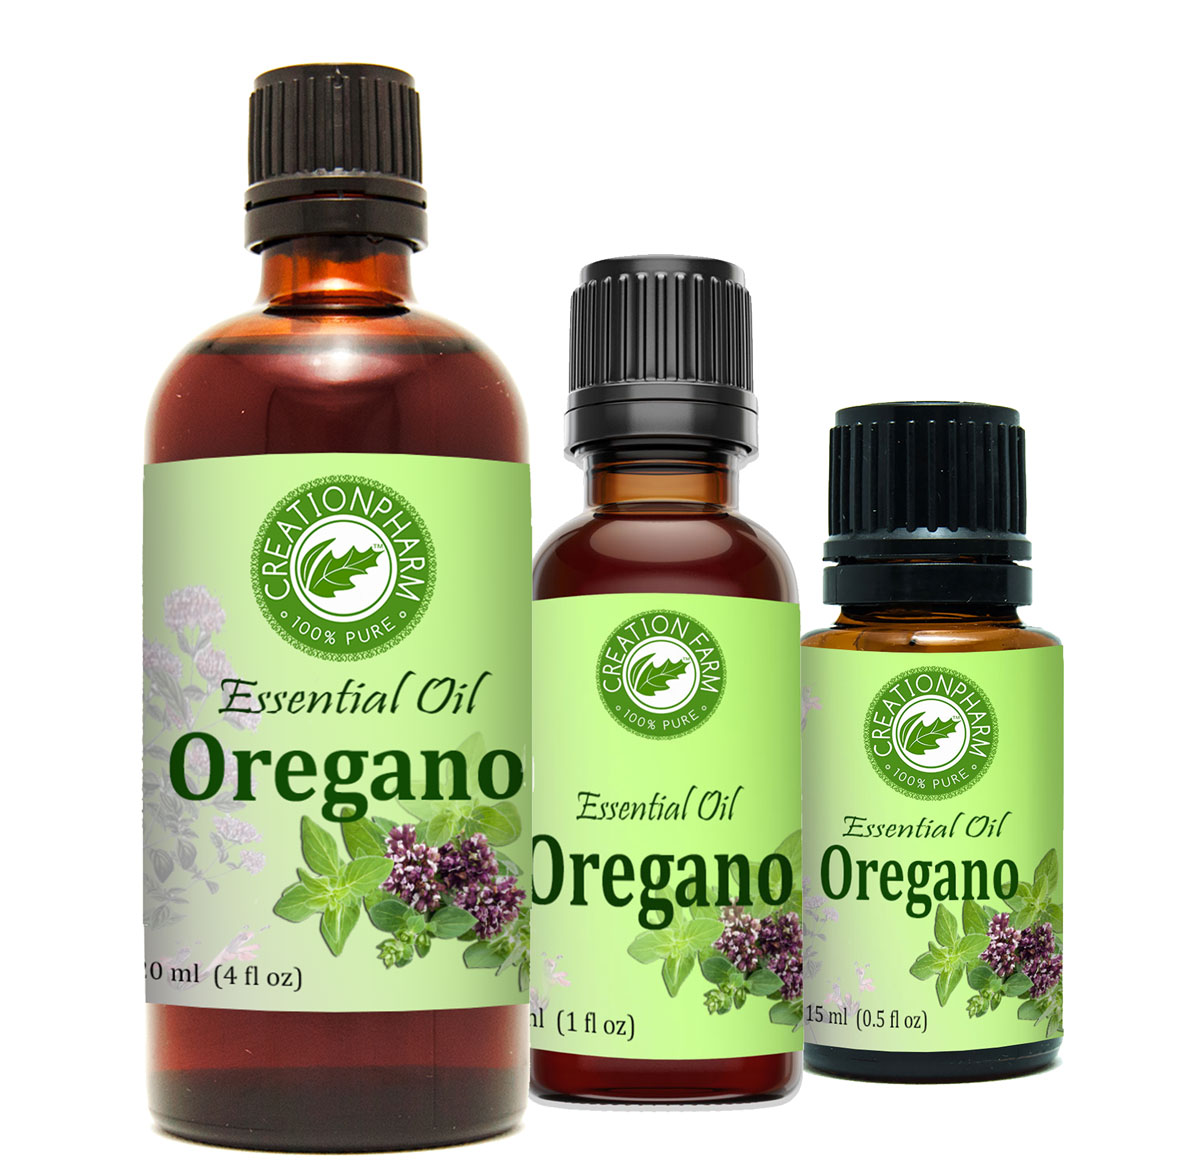 oregano ointment sample recommendations Psoriasis is a common skin condition where people have a buildup of rough oregano oil some people say that oregano oil helps their psoriasis symptoms.